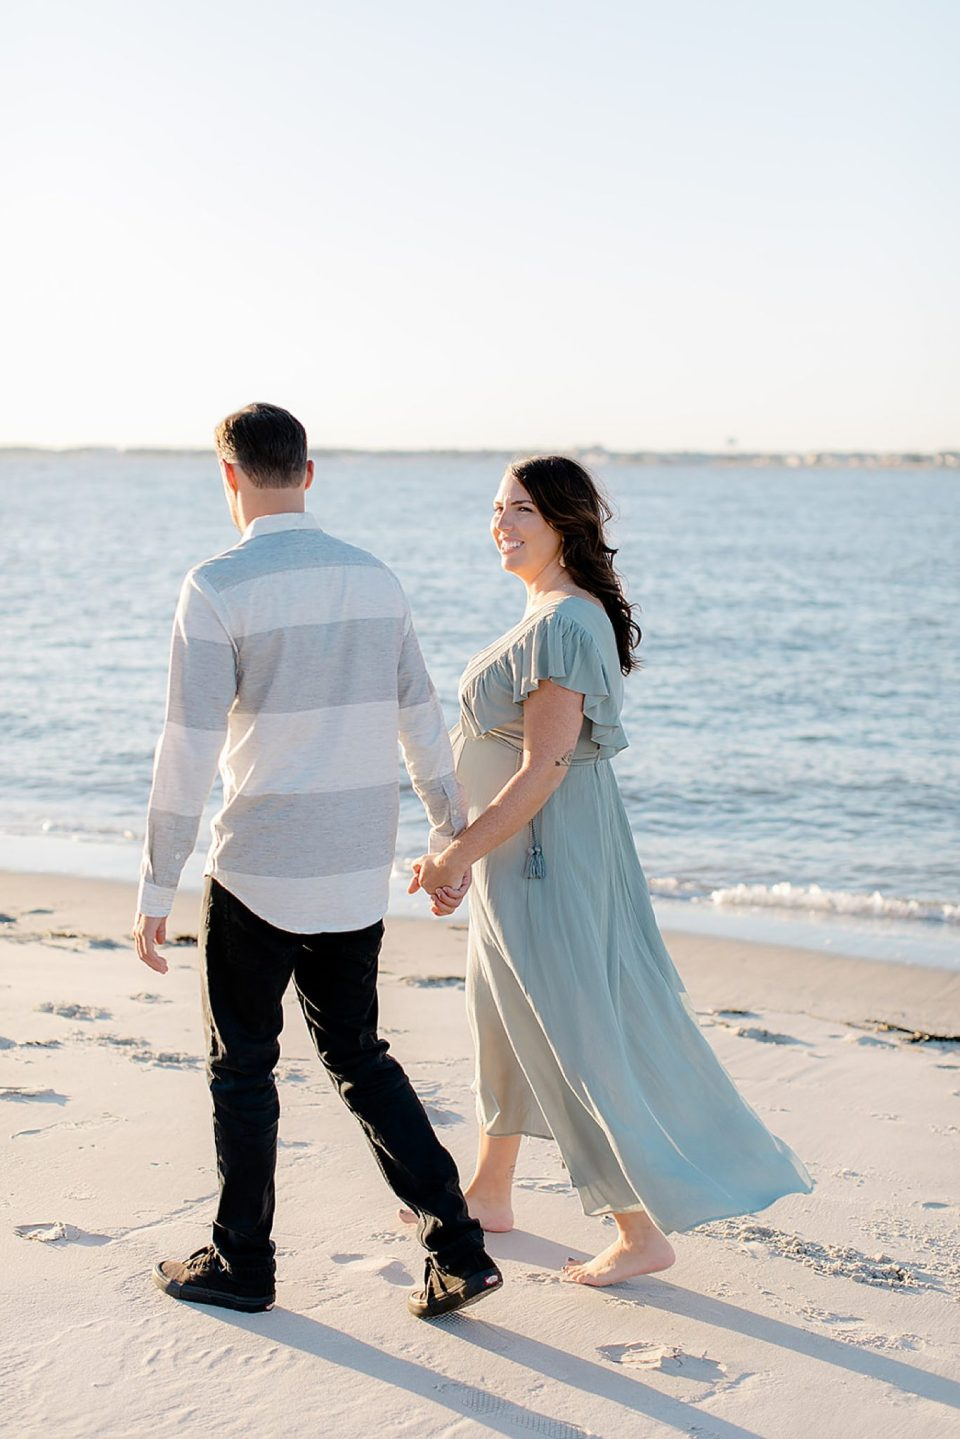 Ocean City NJ Maternity Portrait Photography by Magdalena Studios 0005 scaled